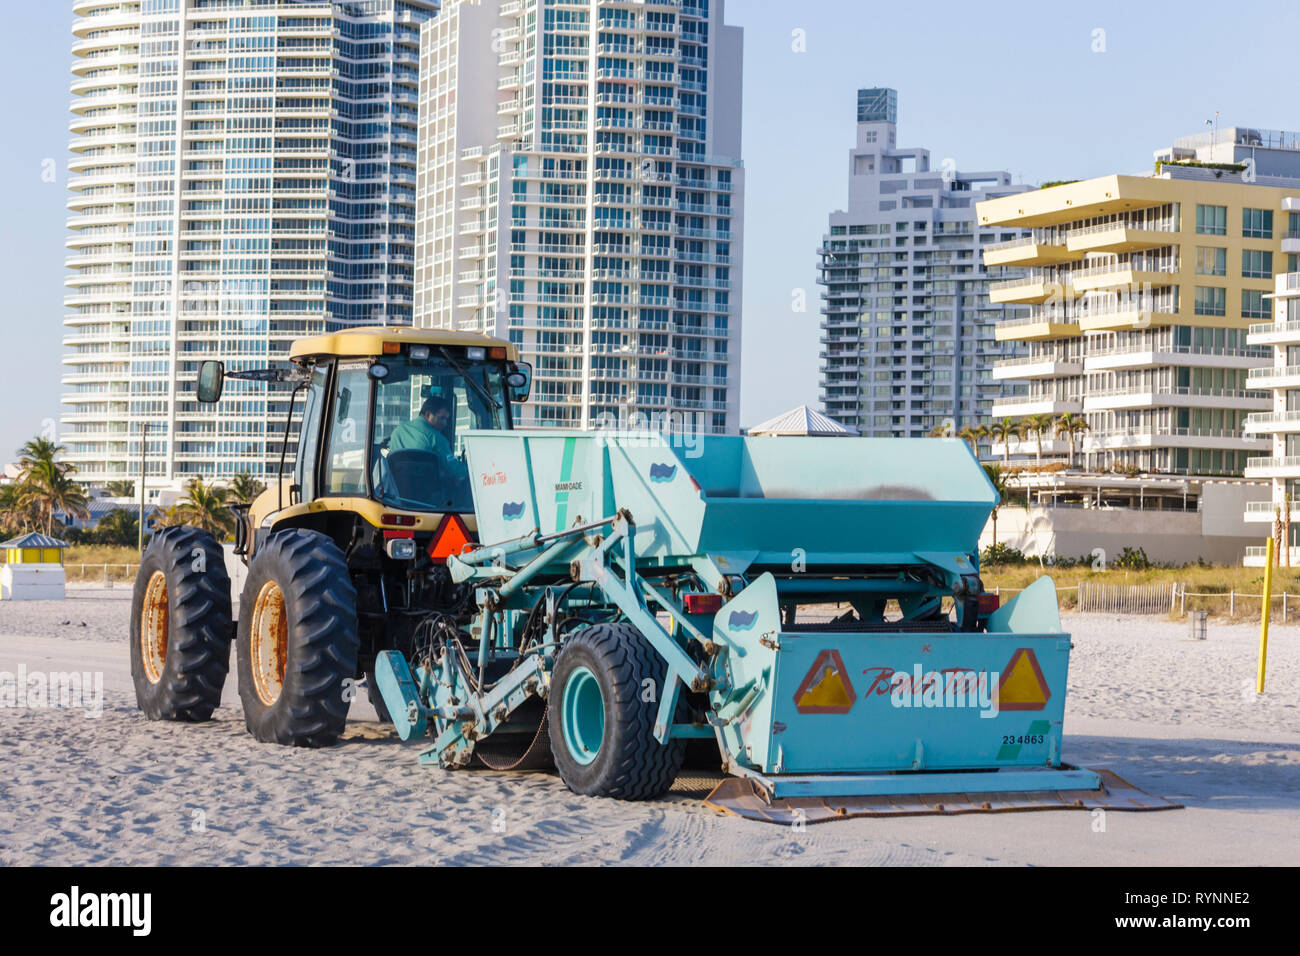 Miami Beach Florida South Beach Atlantic Ocean public beach cleaning cleaner tractor pulling machine sift sand litter city emplo - Stock Image